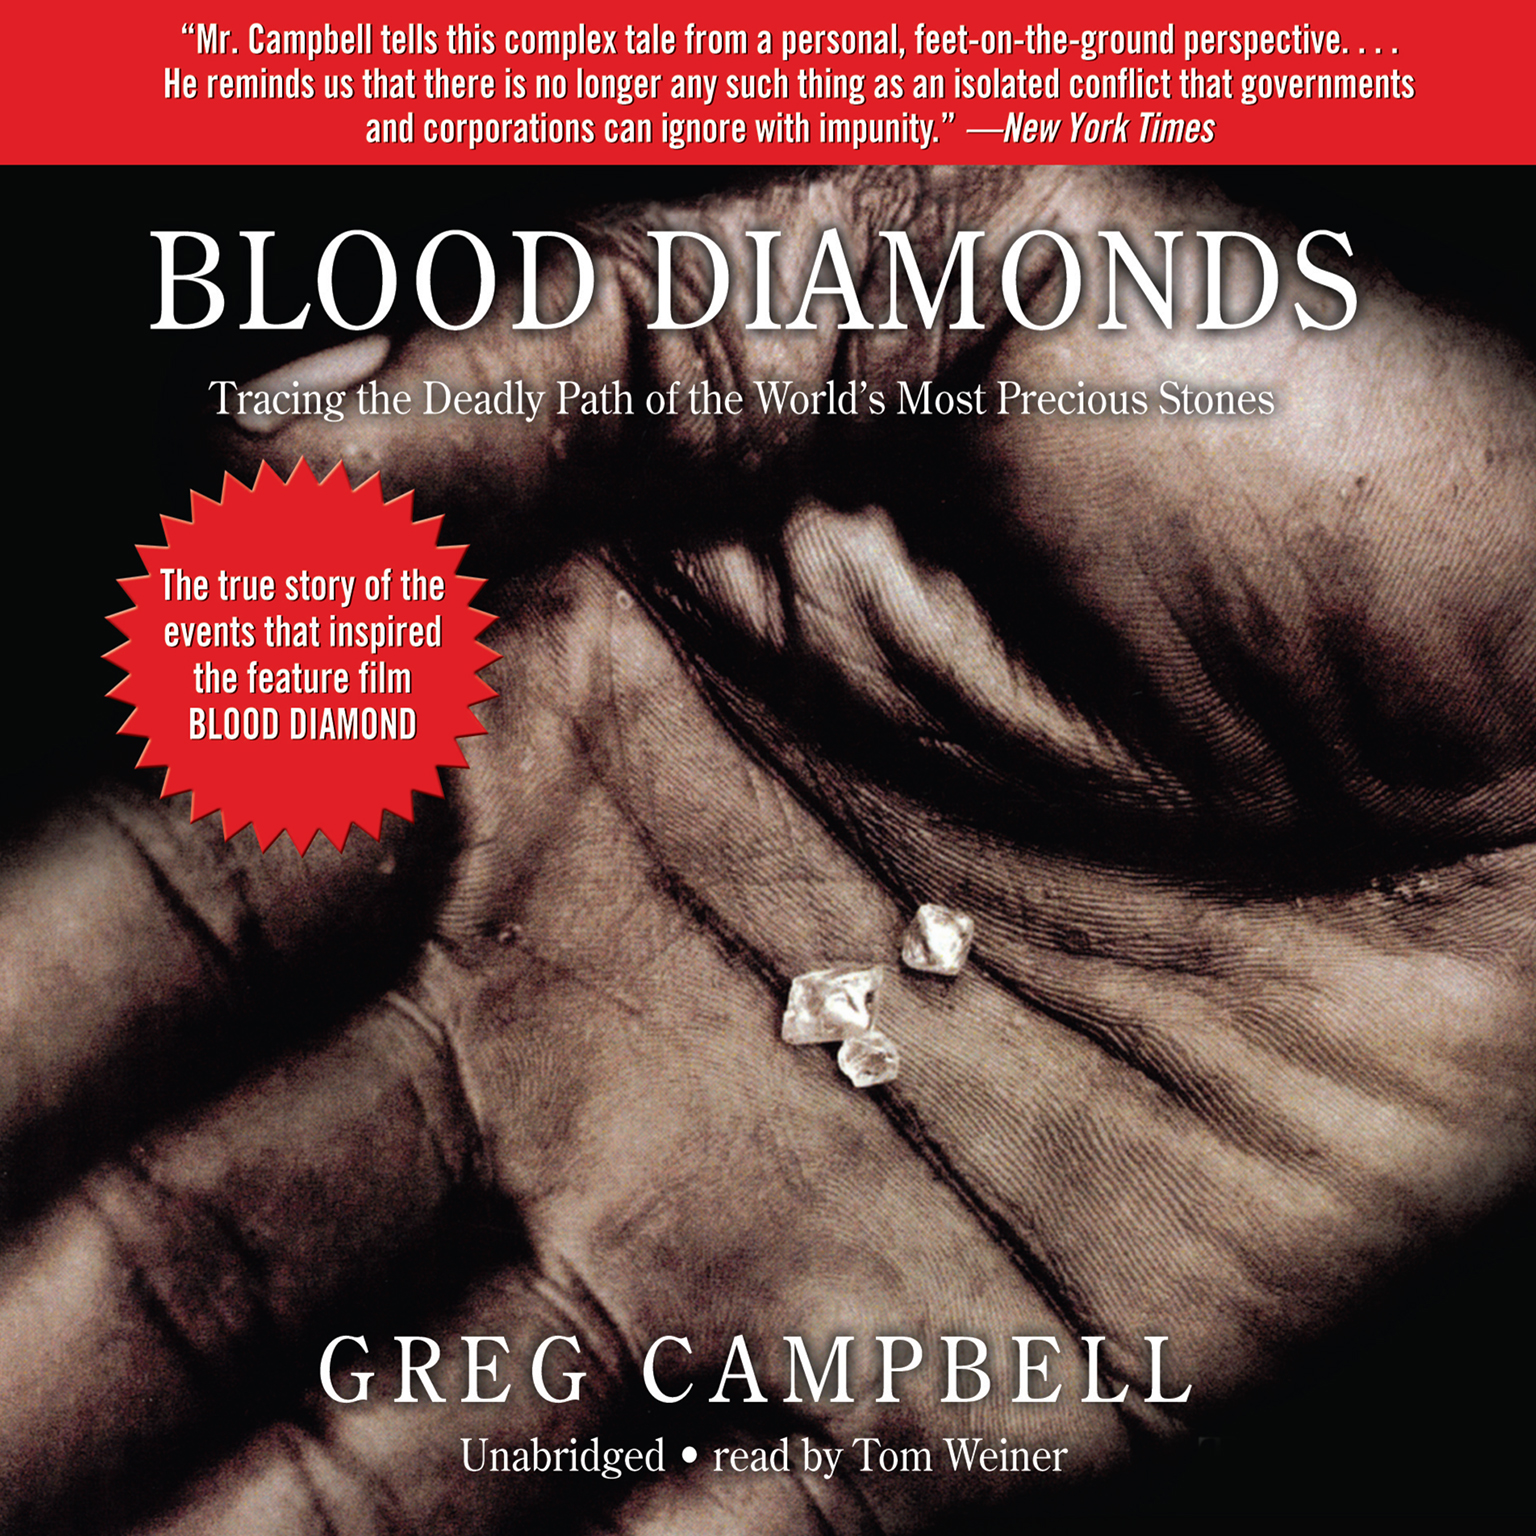 research essay blood diamonds Diamonds, their mining and selling, fuel many of the modern wars in africa corruption, organized crime, and indifference are the major reasons why the trading of.